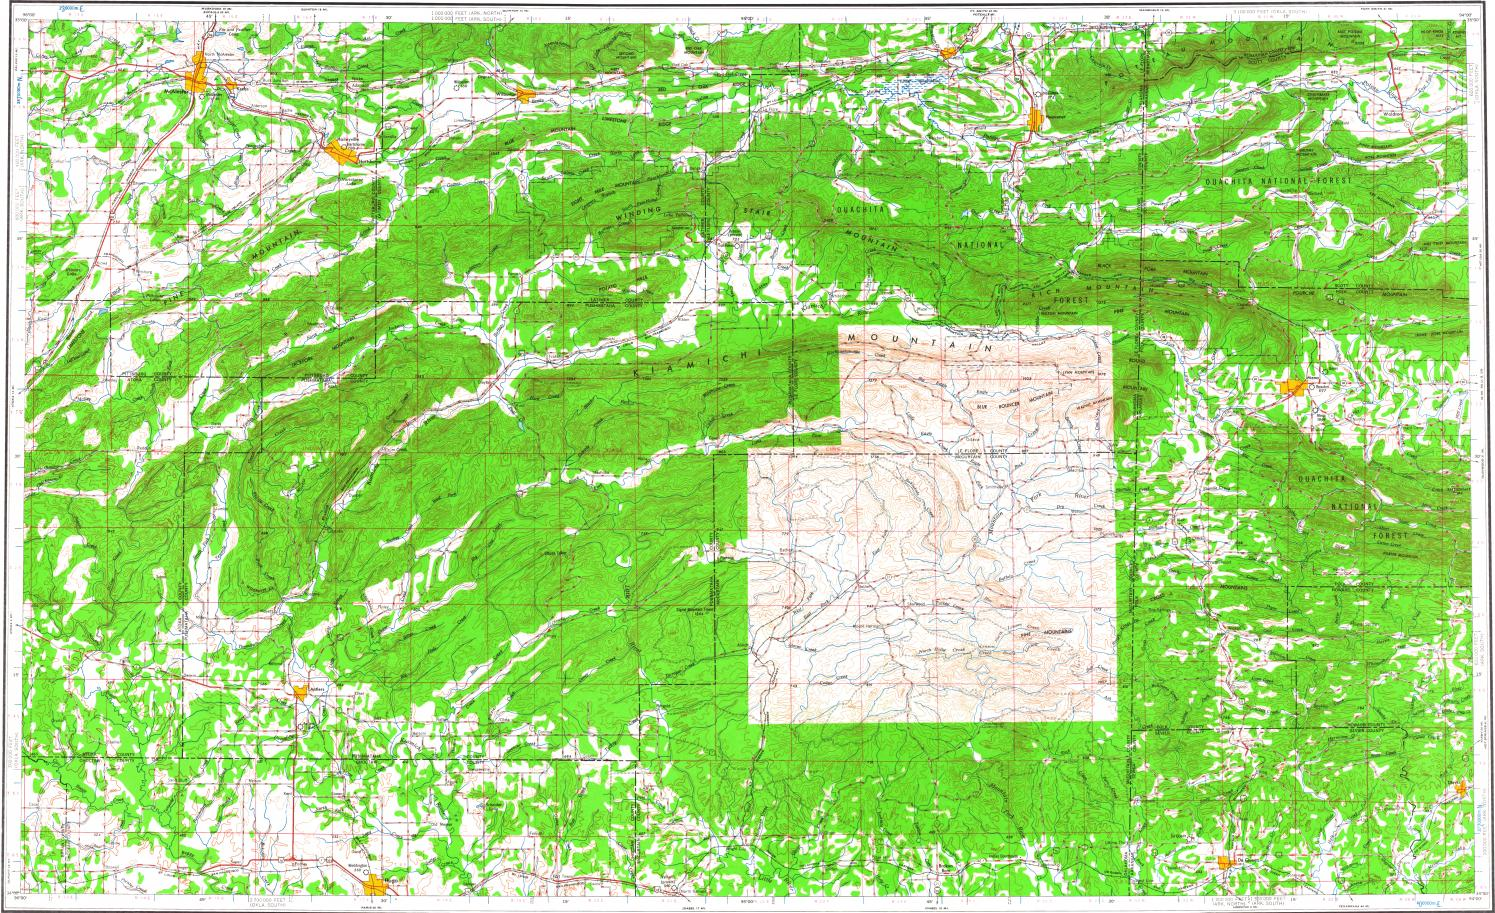 Download topographic map in area of Mcalester, Mena, Hugo ... on lake contour maps, dnr lake maps, hume lake california hunting maps, texoma topography maps, national geographic maps, aerial lake maps, satellite lake maps, europe lake maps, tennessee river navigation chart maps, campground site maps, gps lake maps, navionics lake maps, usgs lake maps, best 2014 lake fork tx maps,